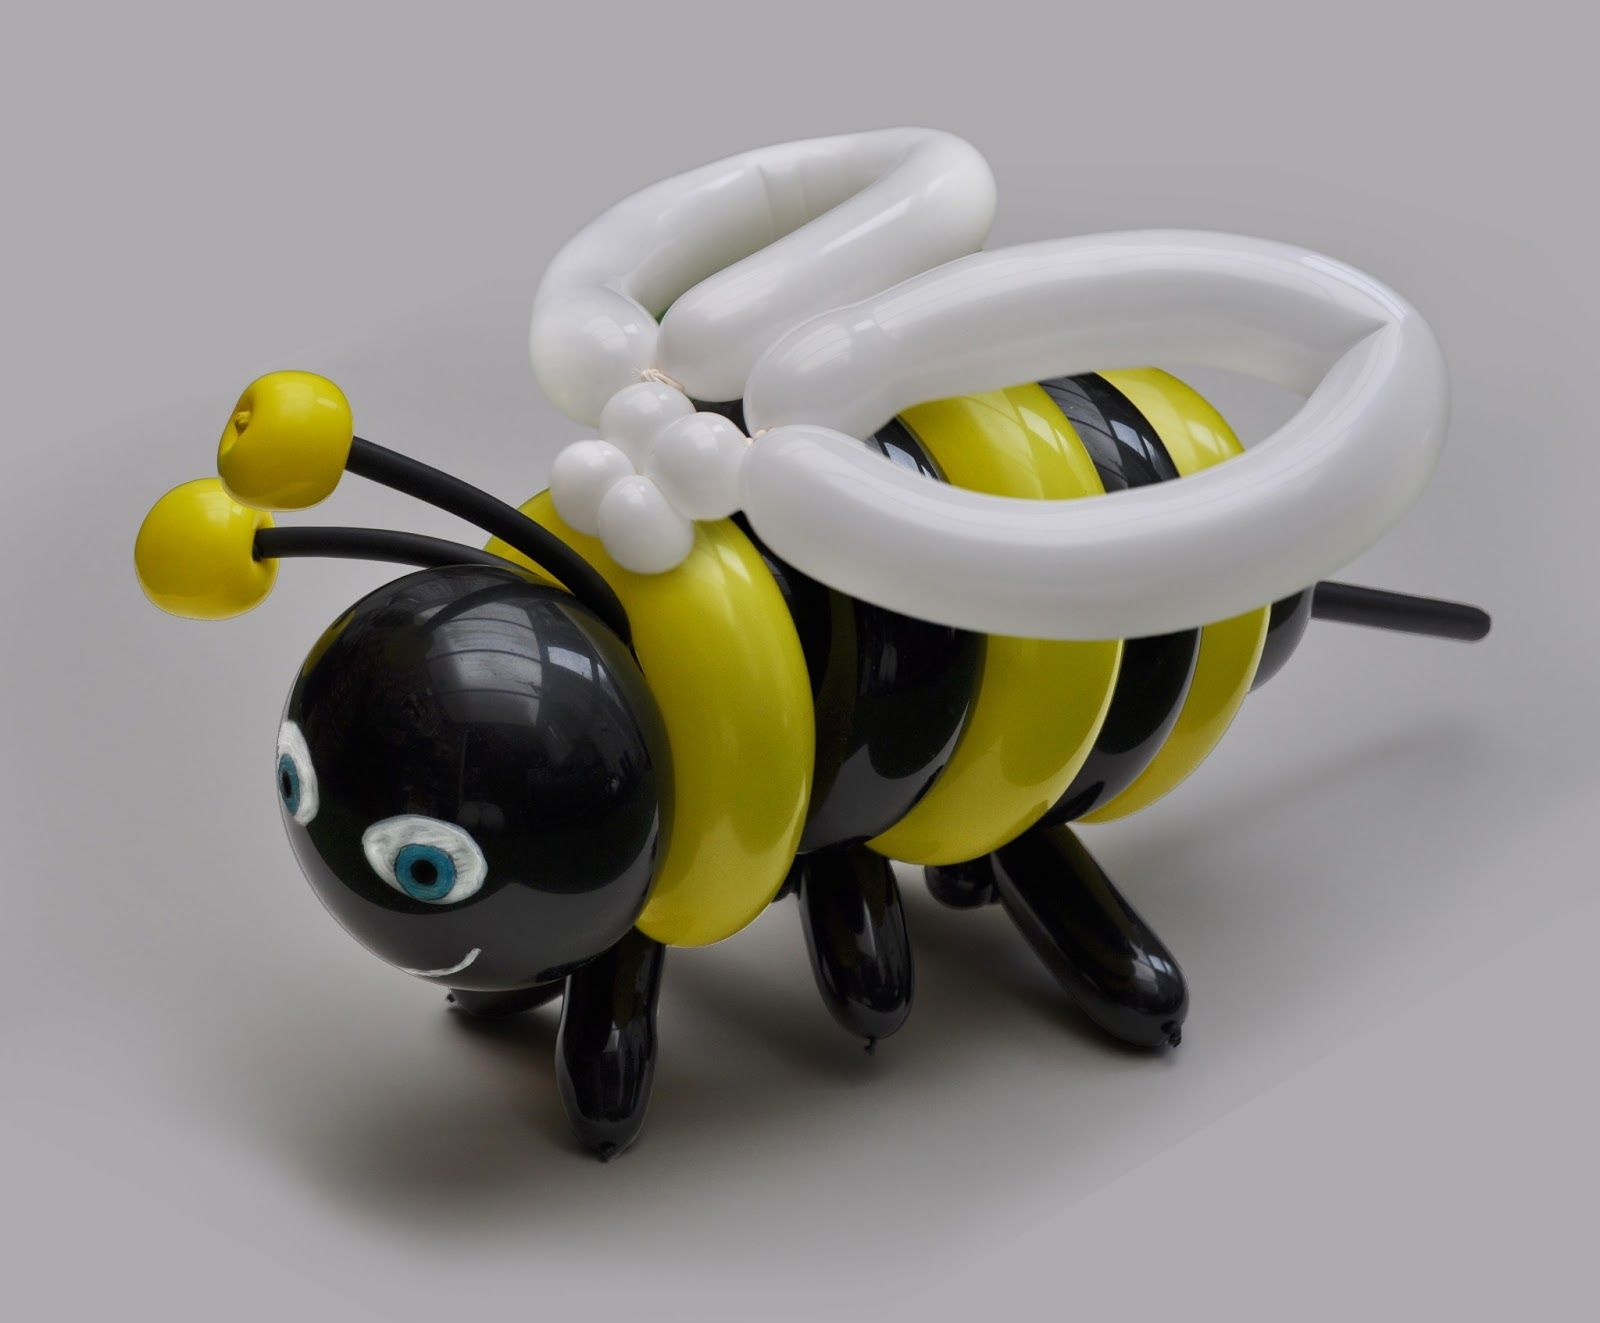 My Daily Balloon: 9th April - Bumblebee